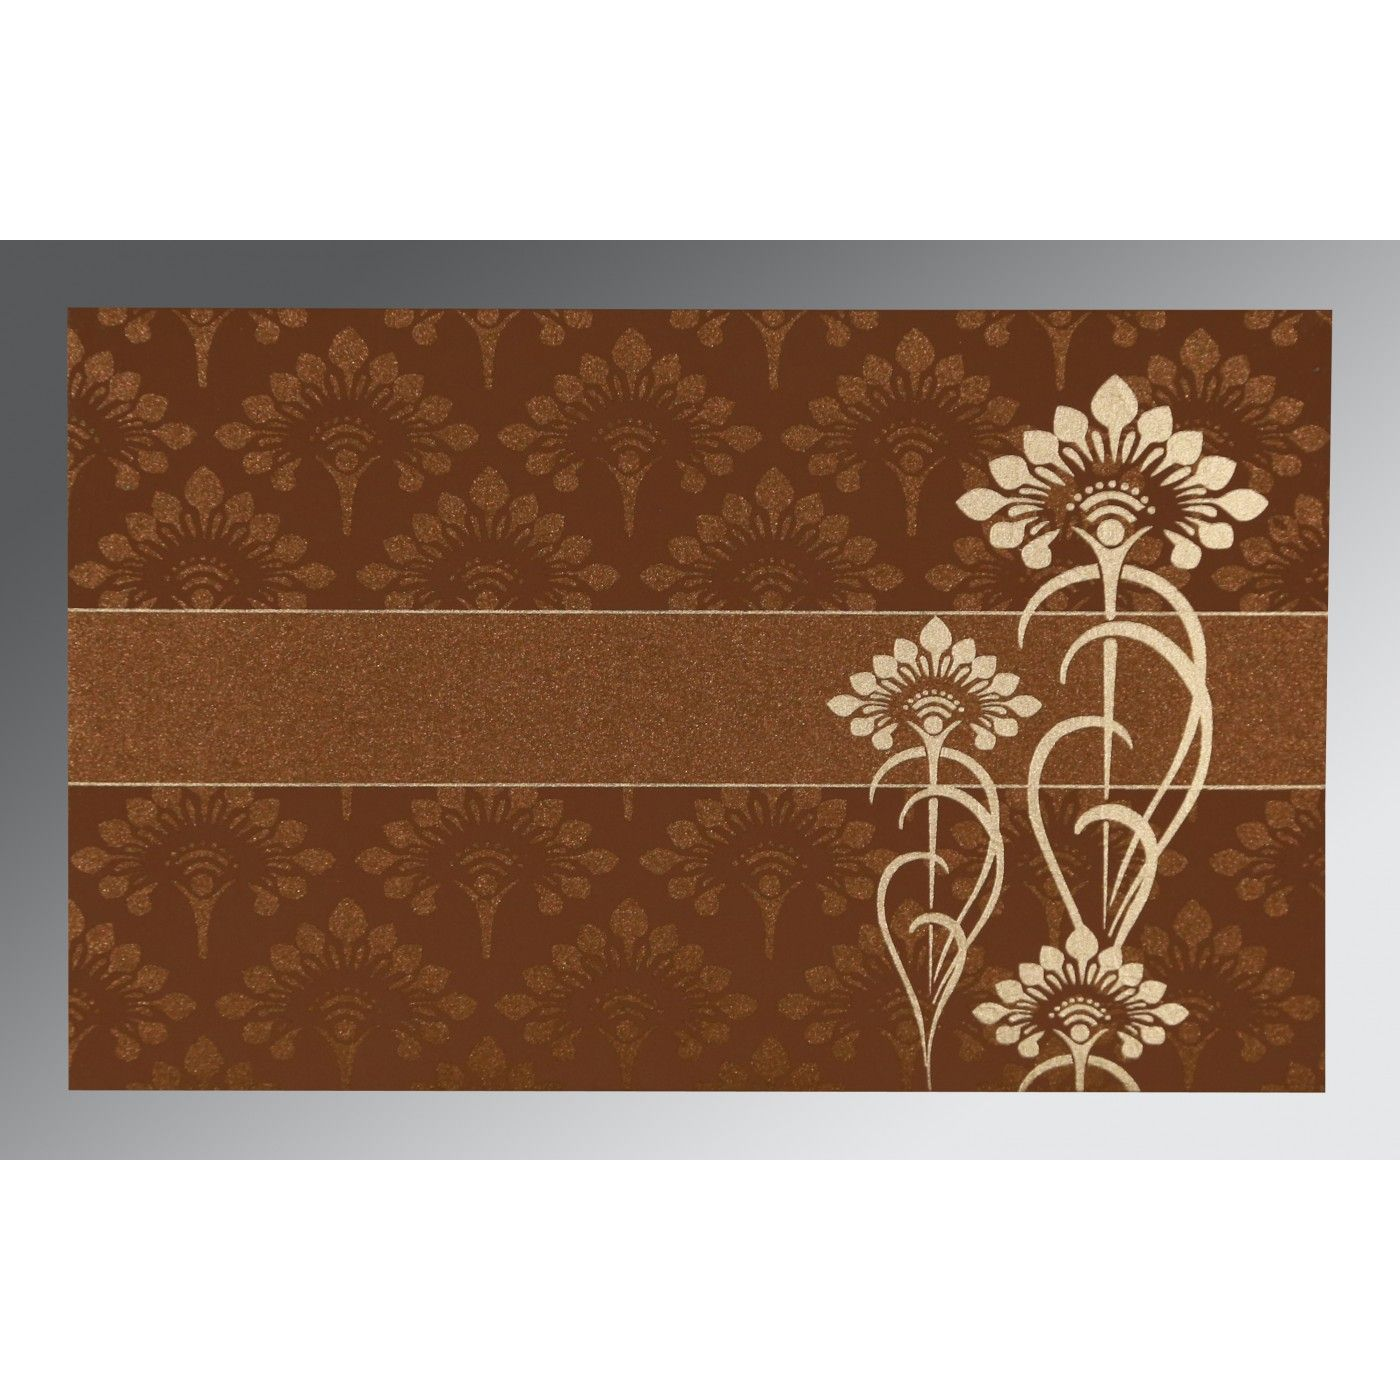 COPPER SHIMMERY SCREEN PRINTED WEDDING CARD : CS-8239H - IndianWeddingCards